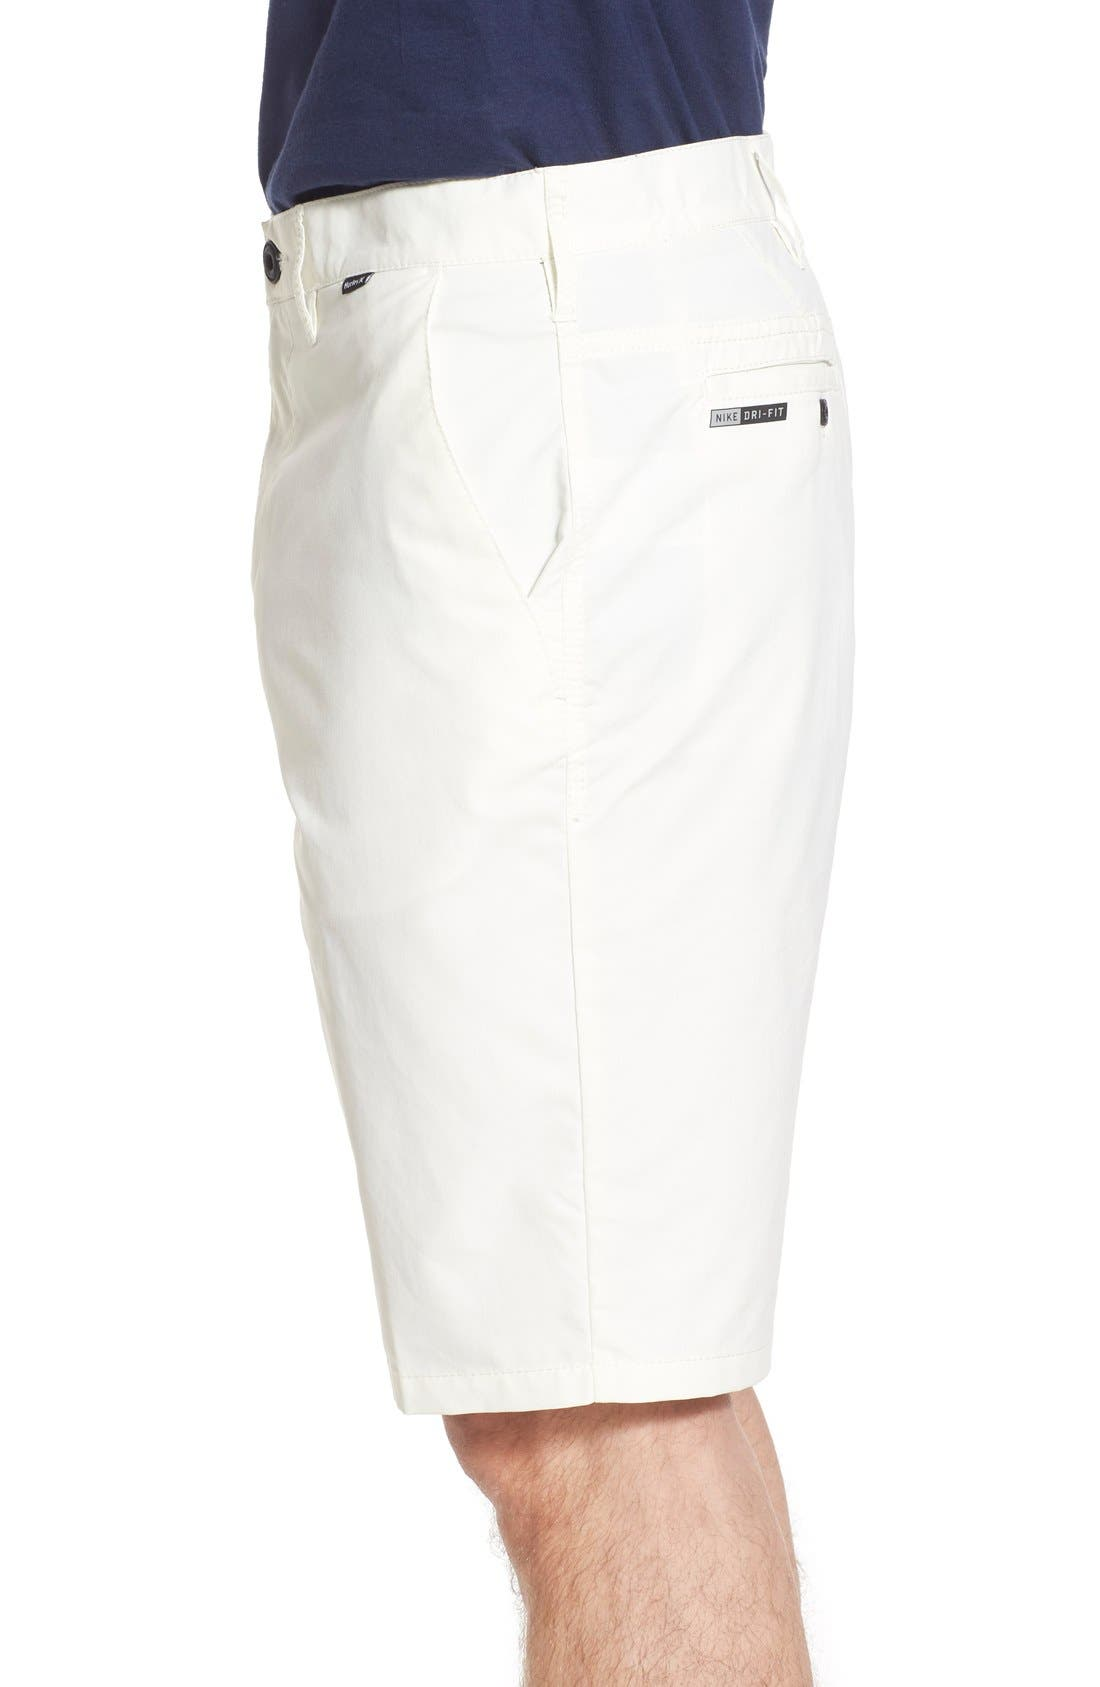 'Dry Out' Dri-FIT<sup>™</sup> Chino Shorts,                             Alternate thumbnail 150, color,